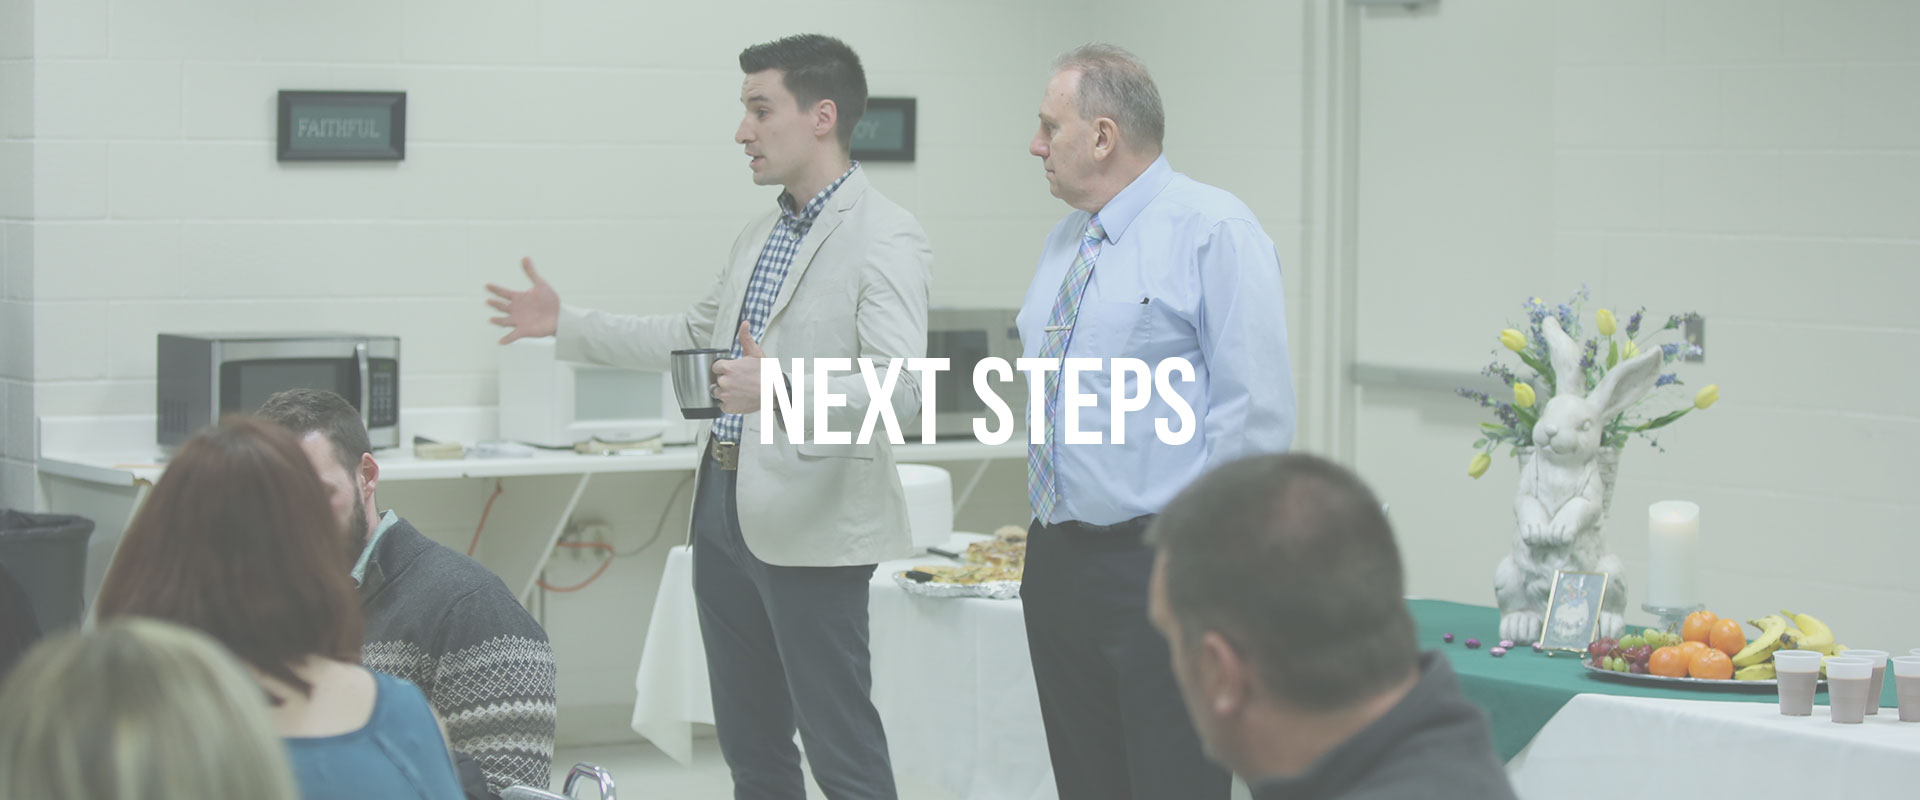 next-steps-header